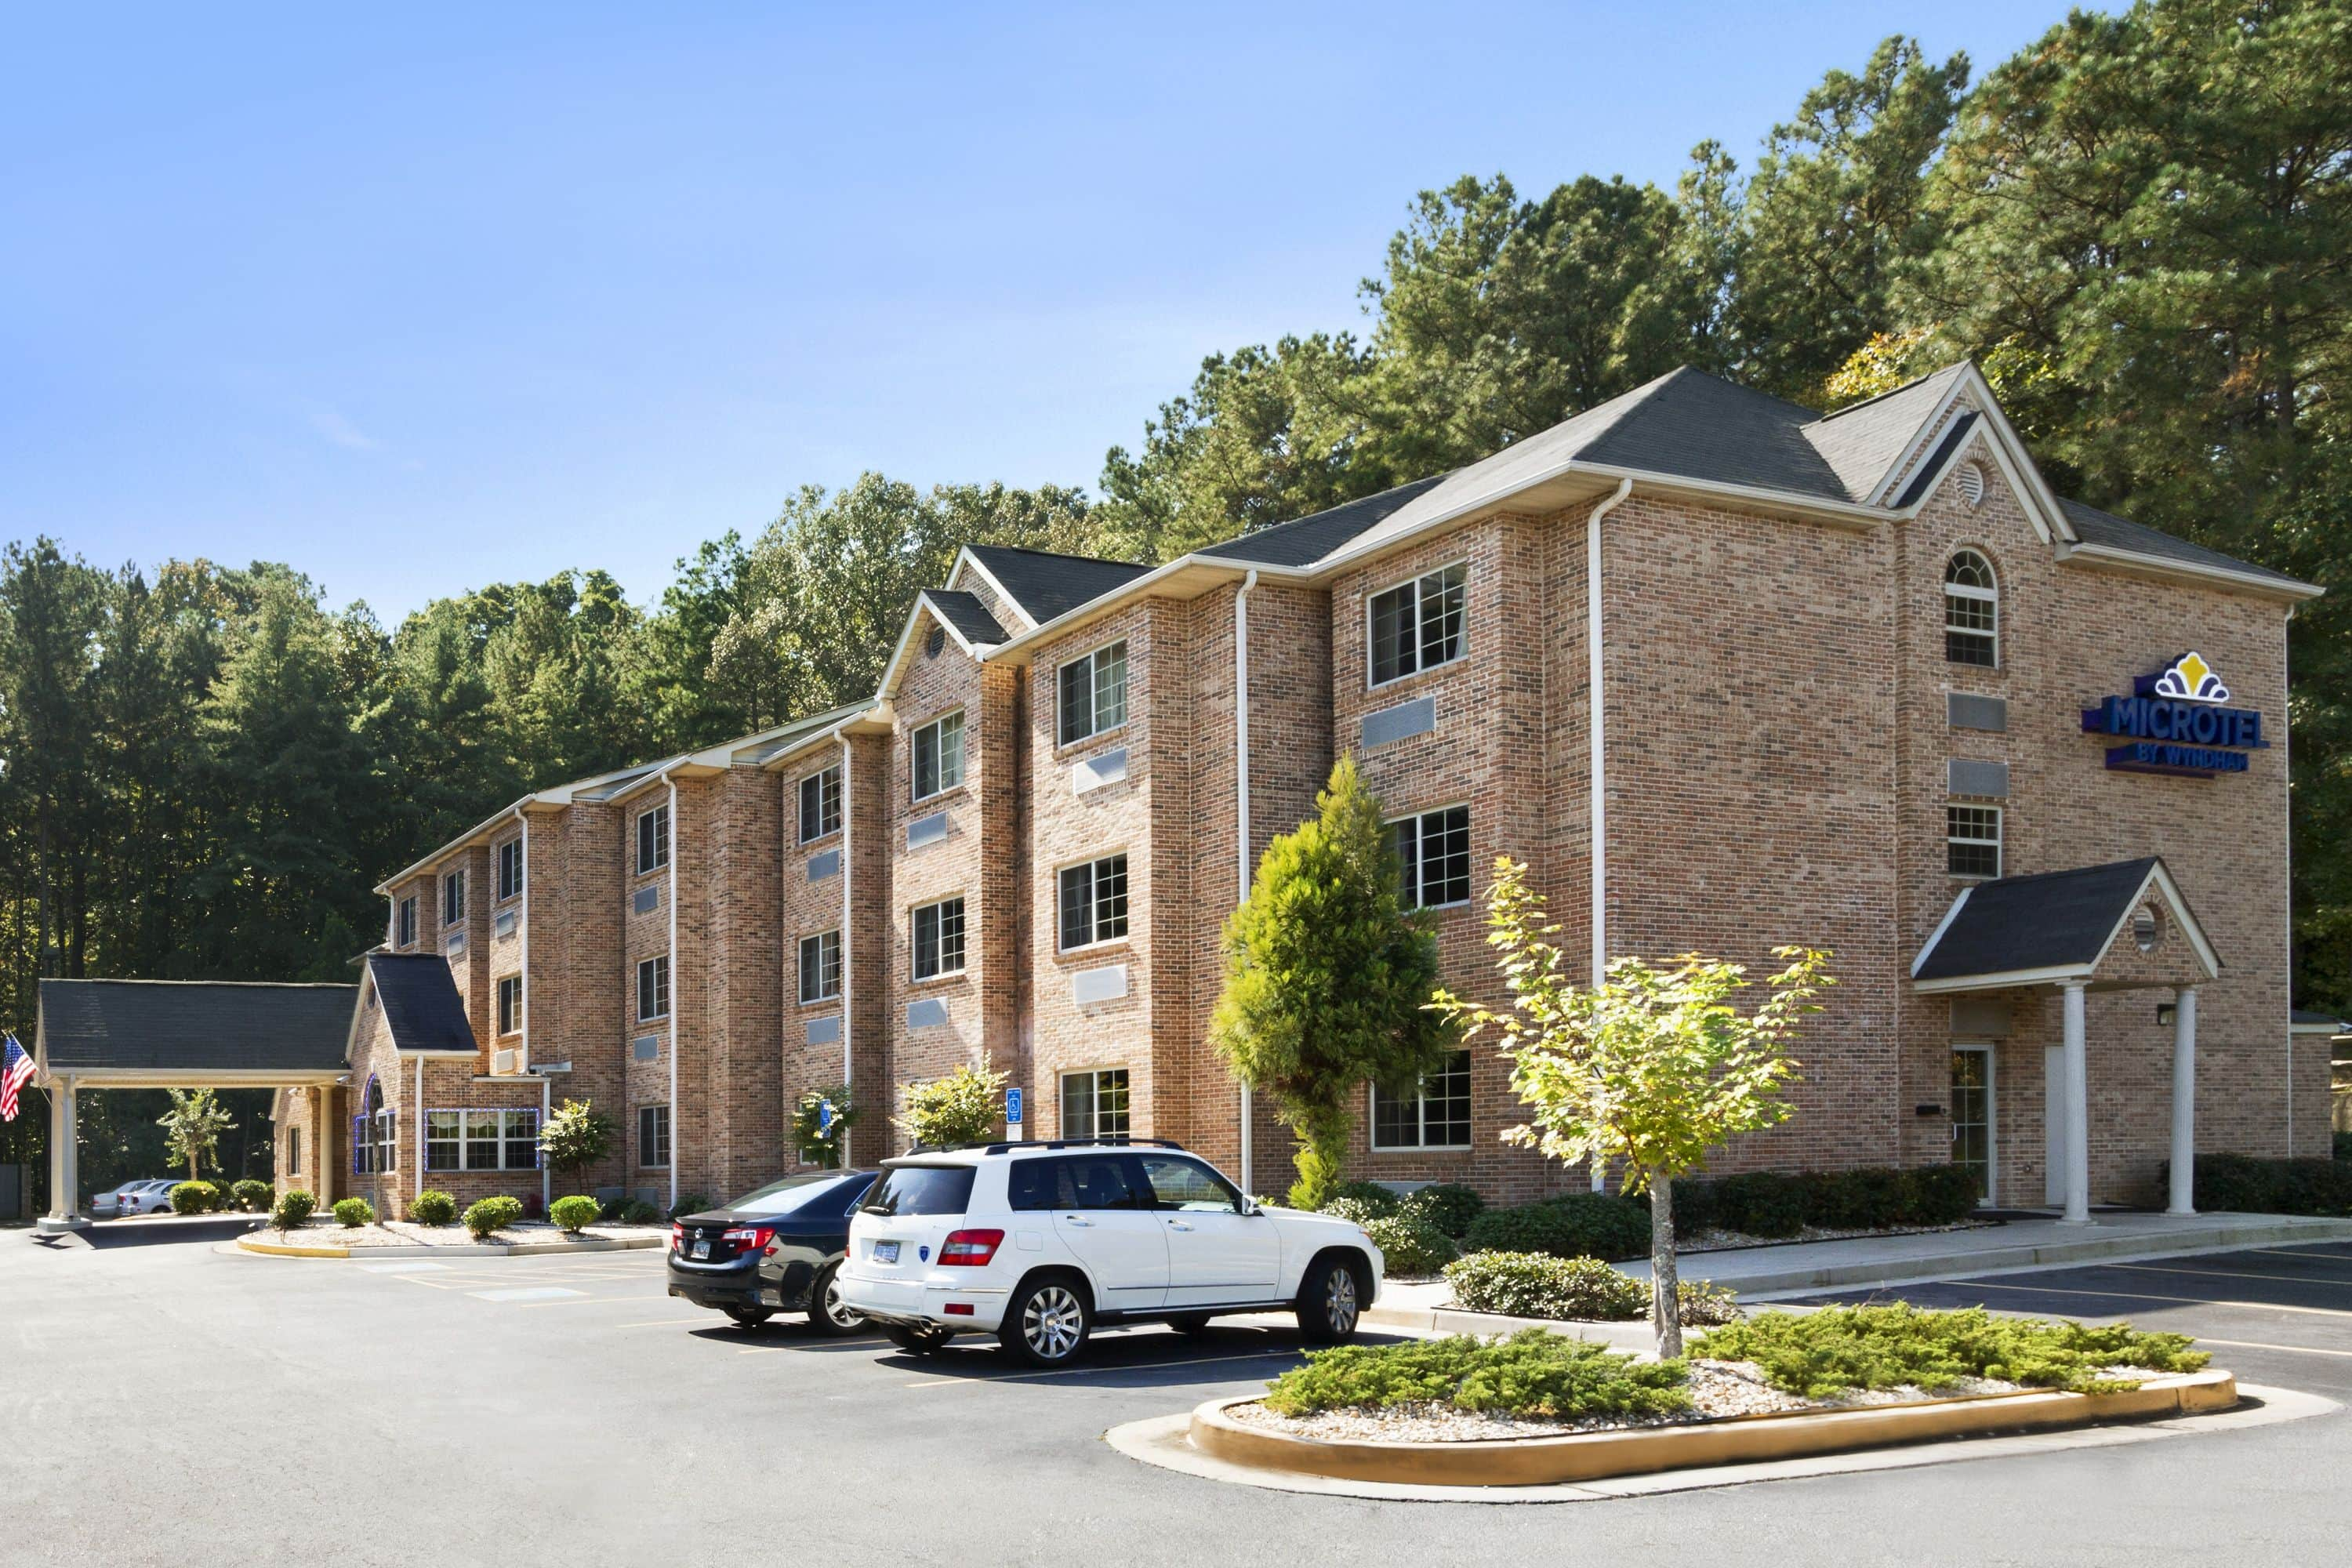 Microtel Inn Suites By Wyndham Lithonia Stone Mountain Ga Hotels